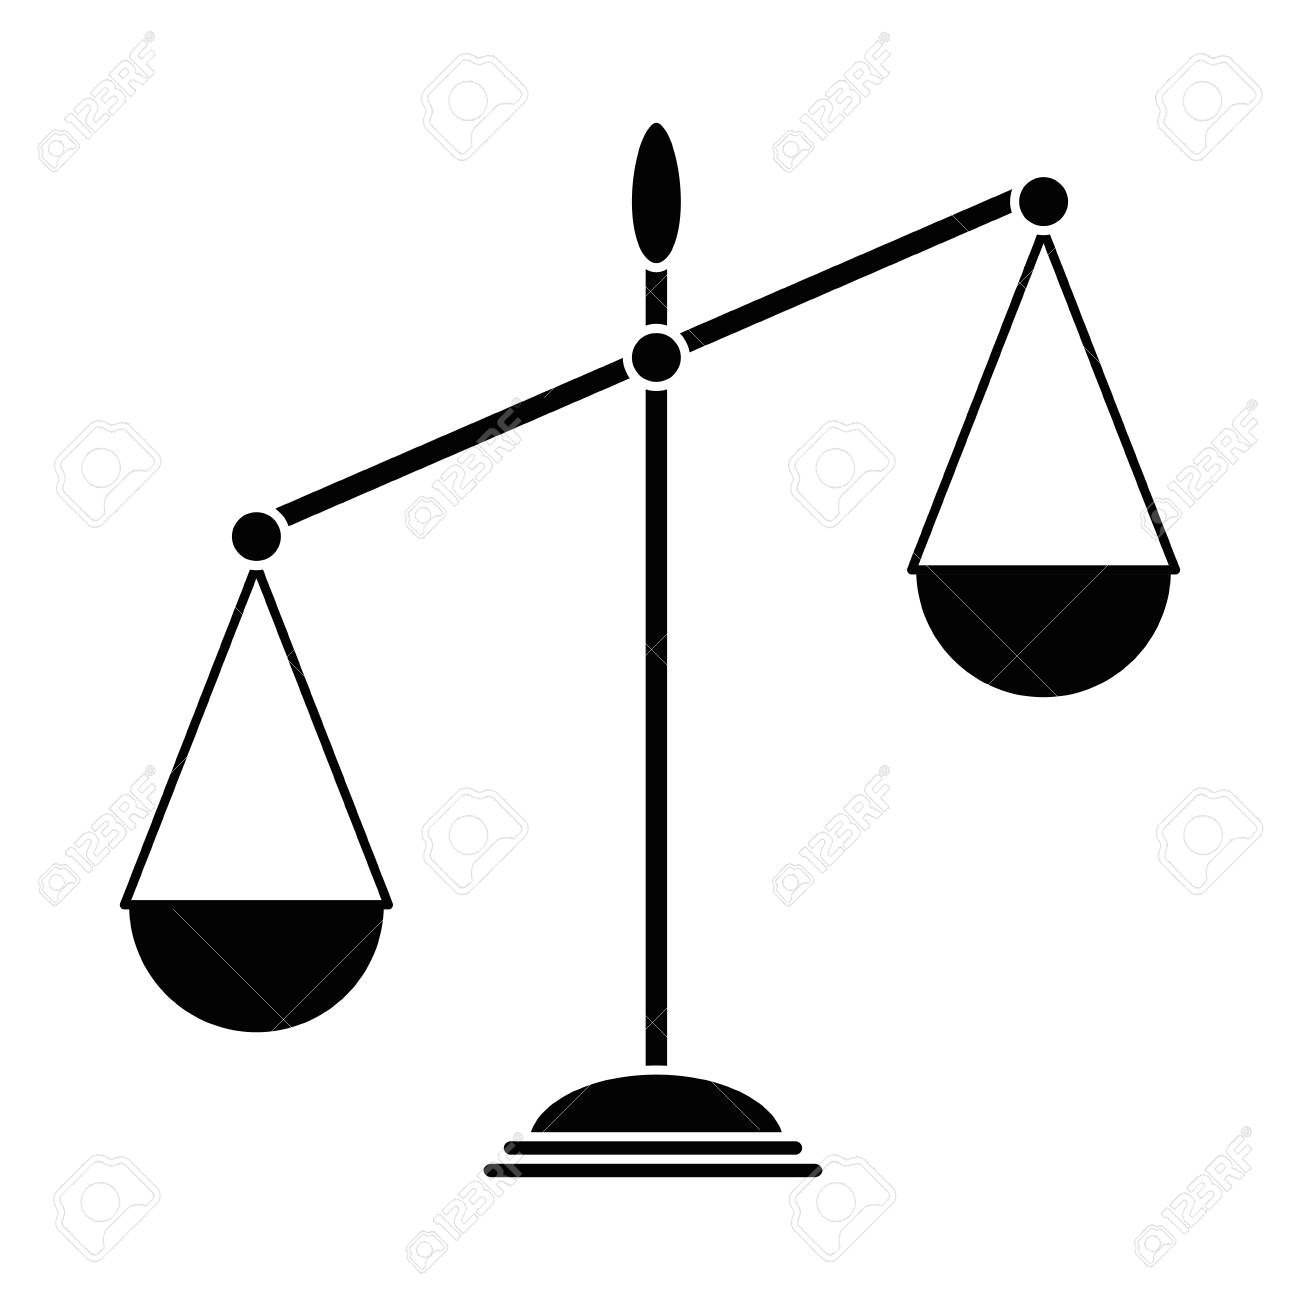 Balance Scale Isolated Icon Vector Illustration Design Royalty Free Cliparts Vectors And Stock Illustration Image 88828861